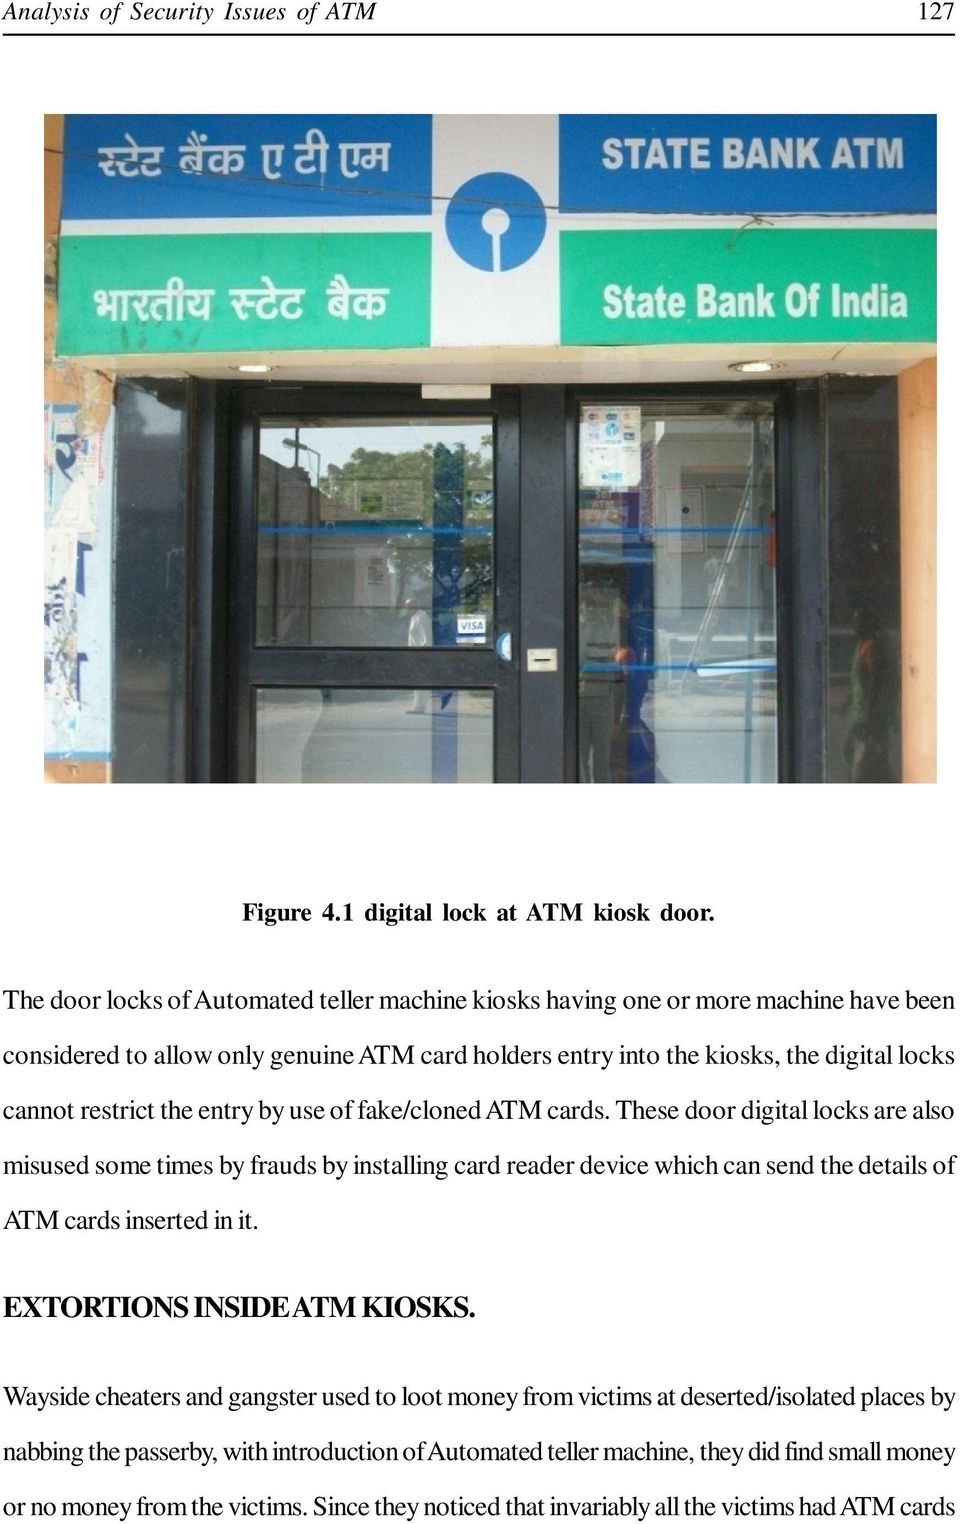 entry by use of fake/coned ATM cards. These door digita ocks are aso misused some times by frauds by instaing card reader device which can send the detais of ATM cards inserted in it.